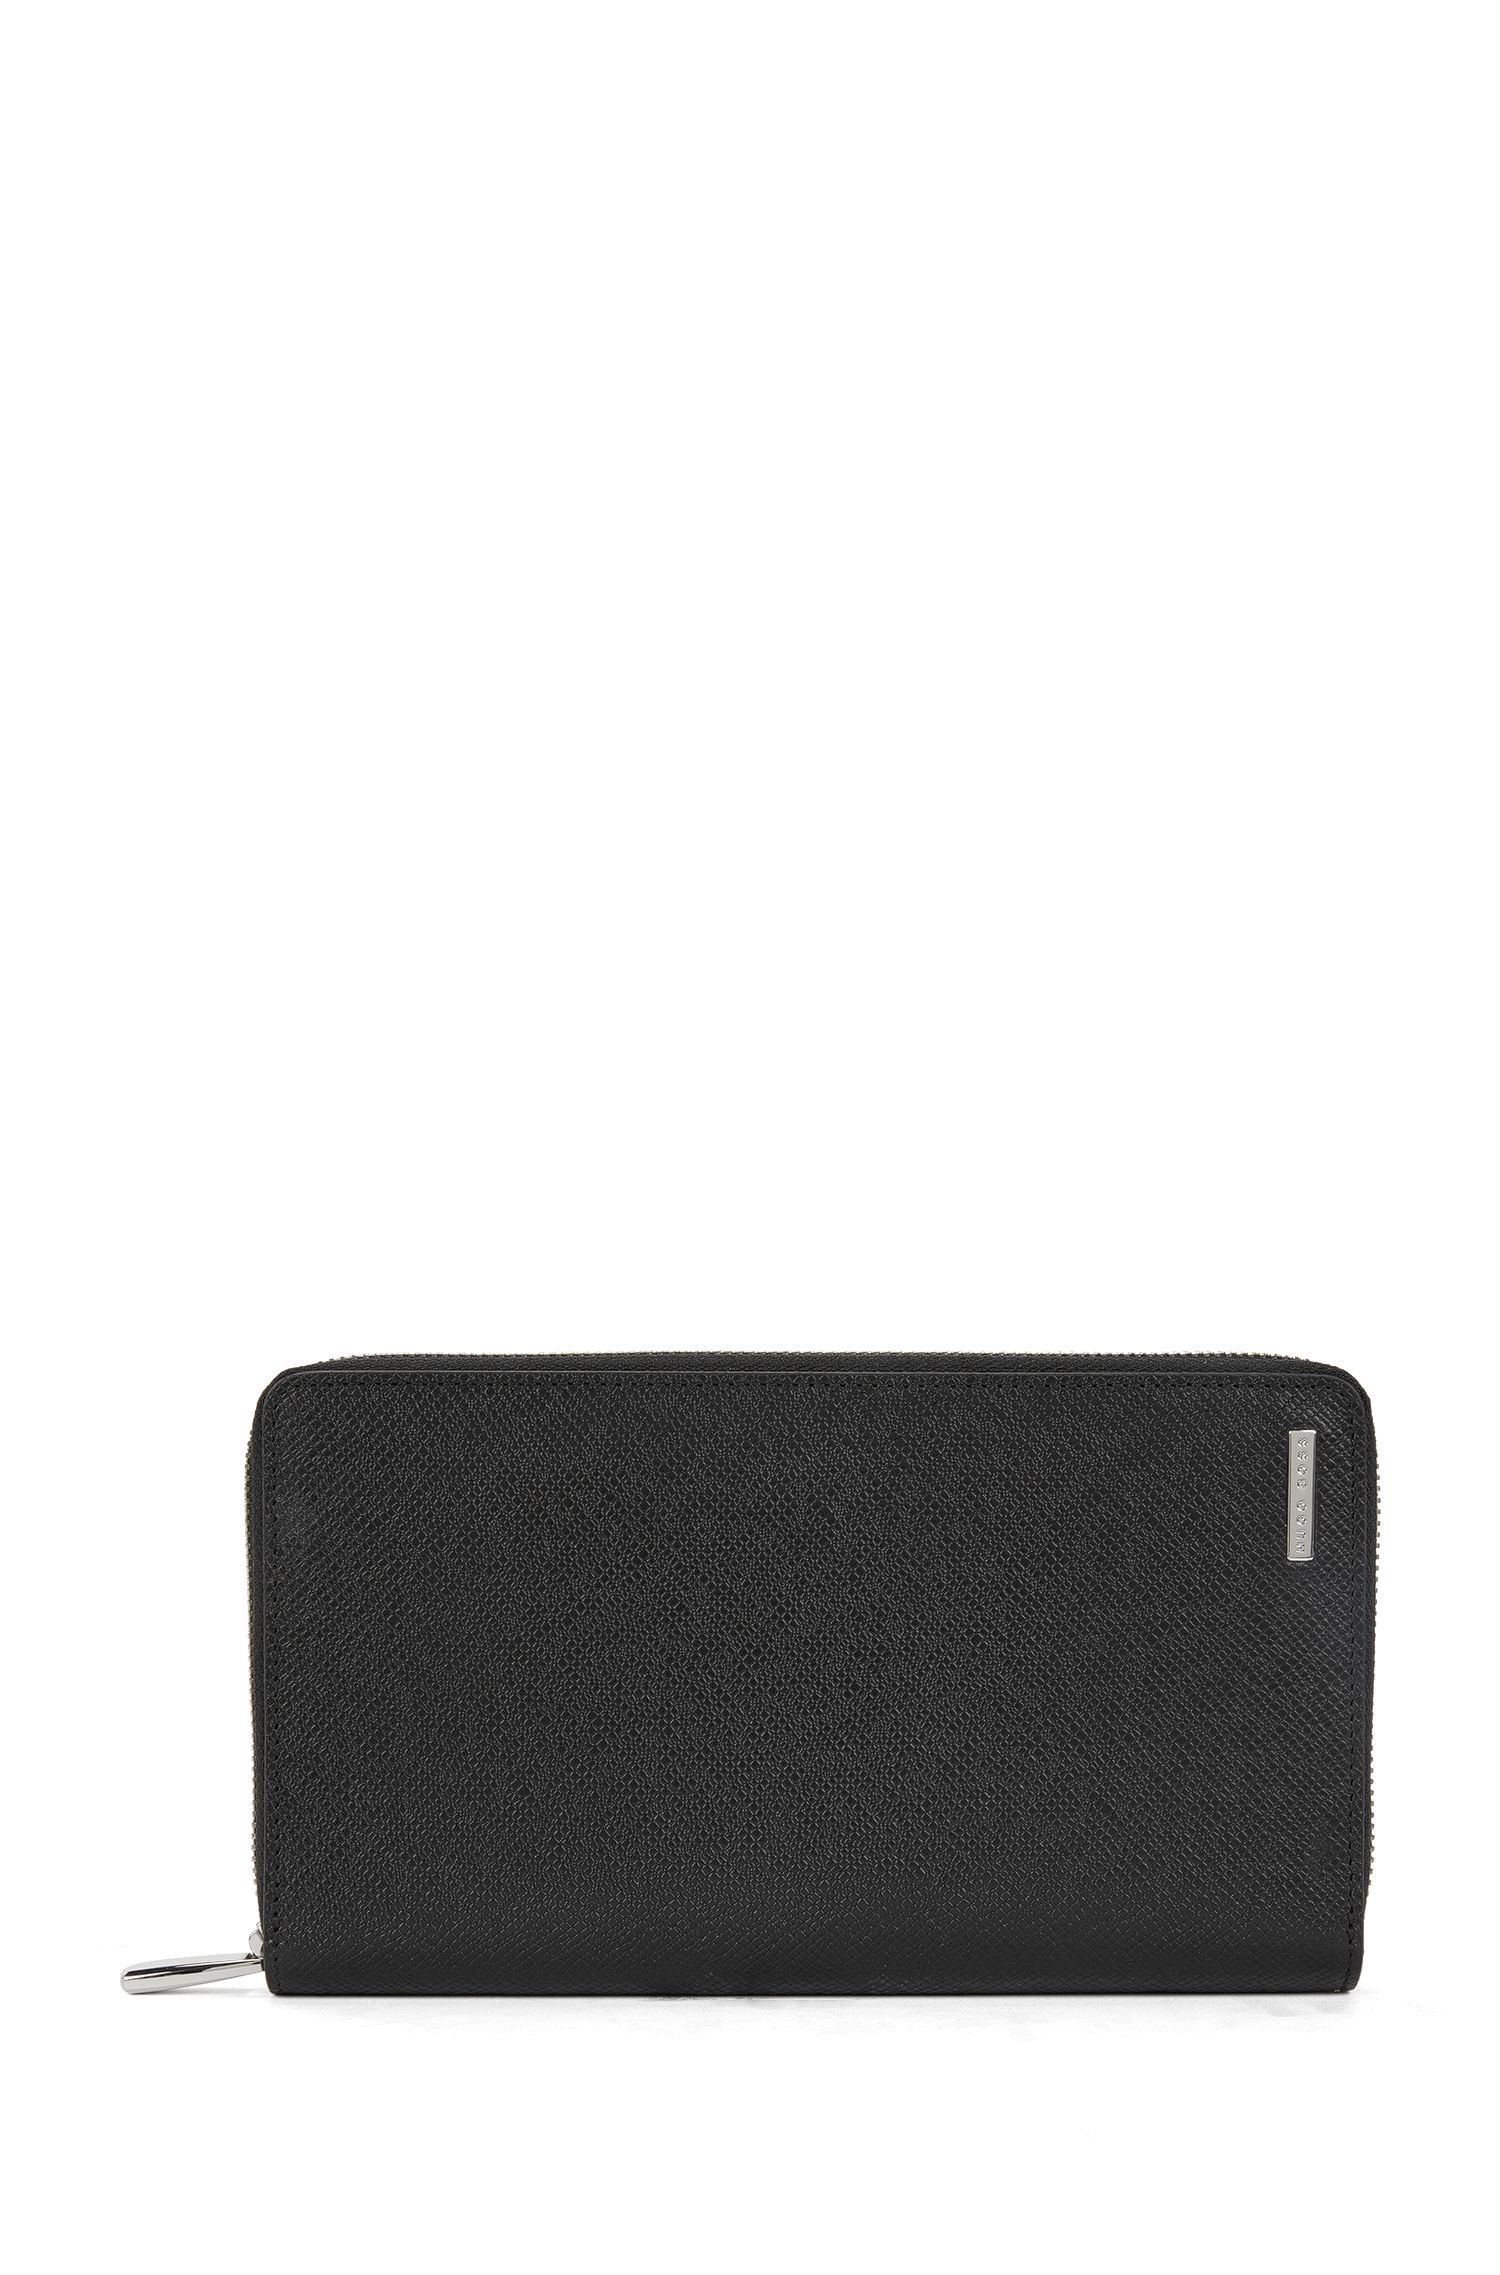 Leather Zip-Around Wallet | Signature S Zip